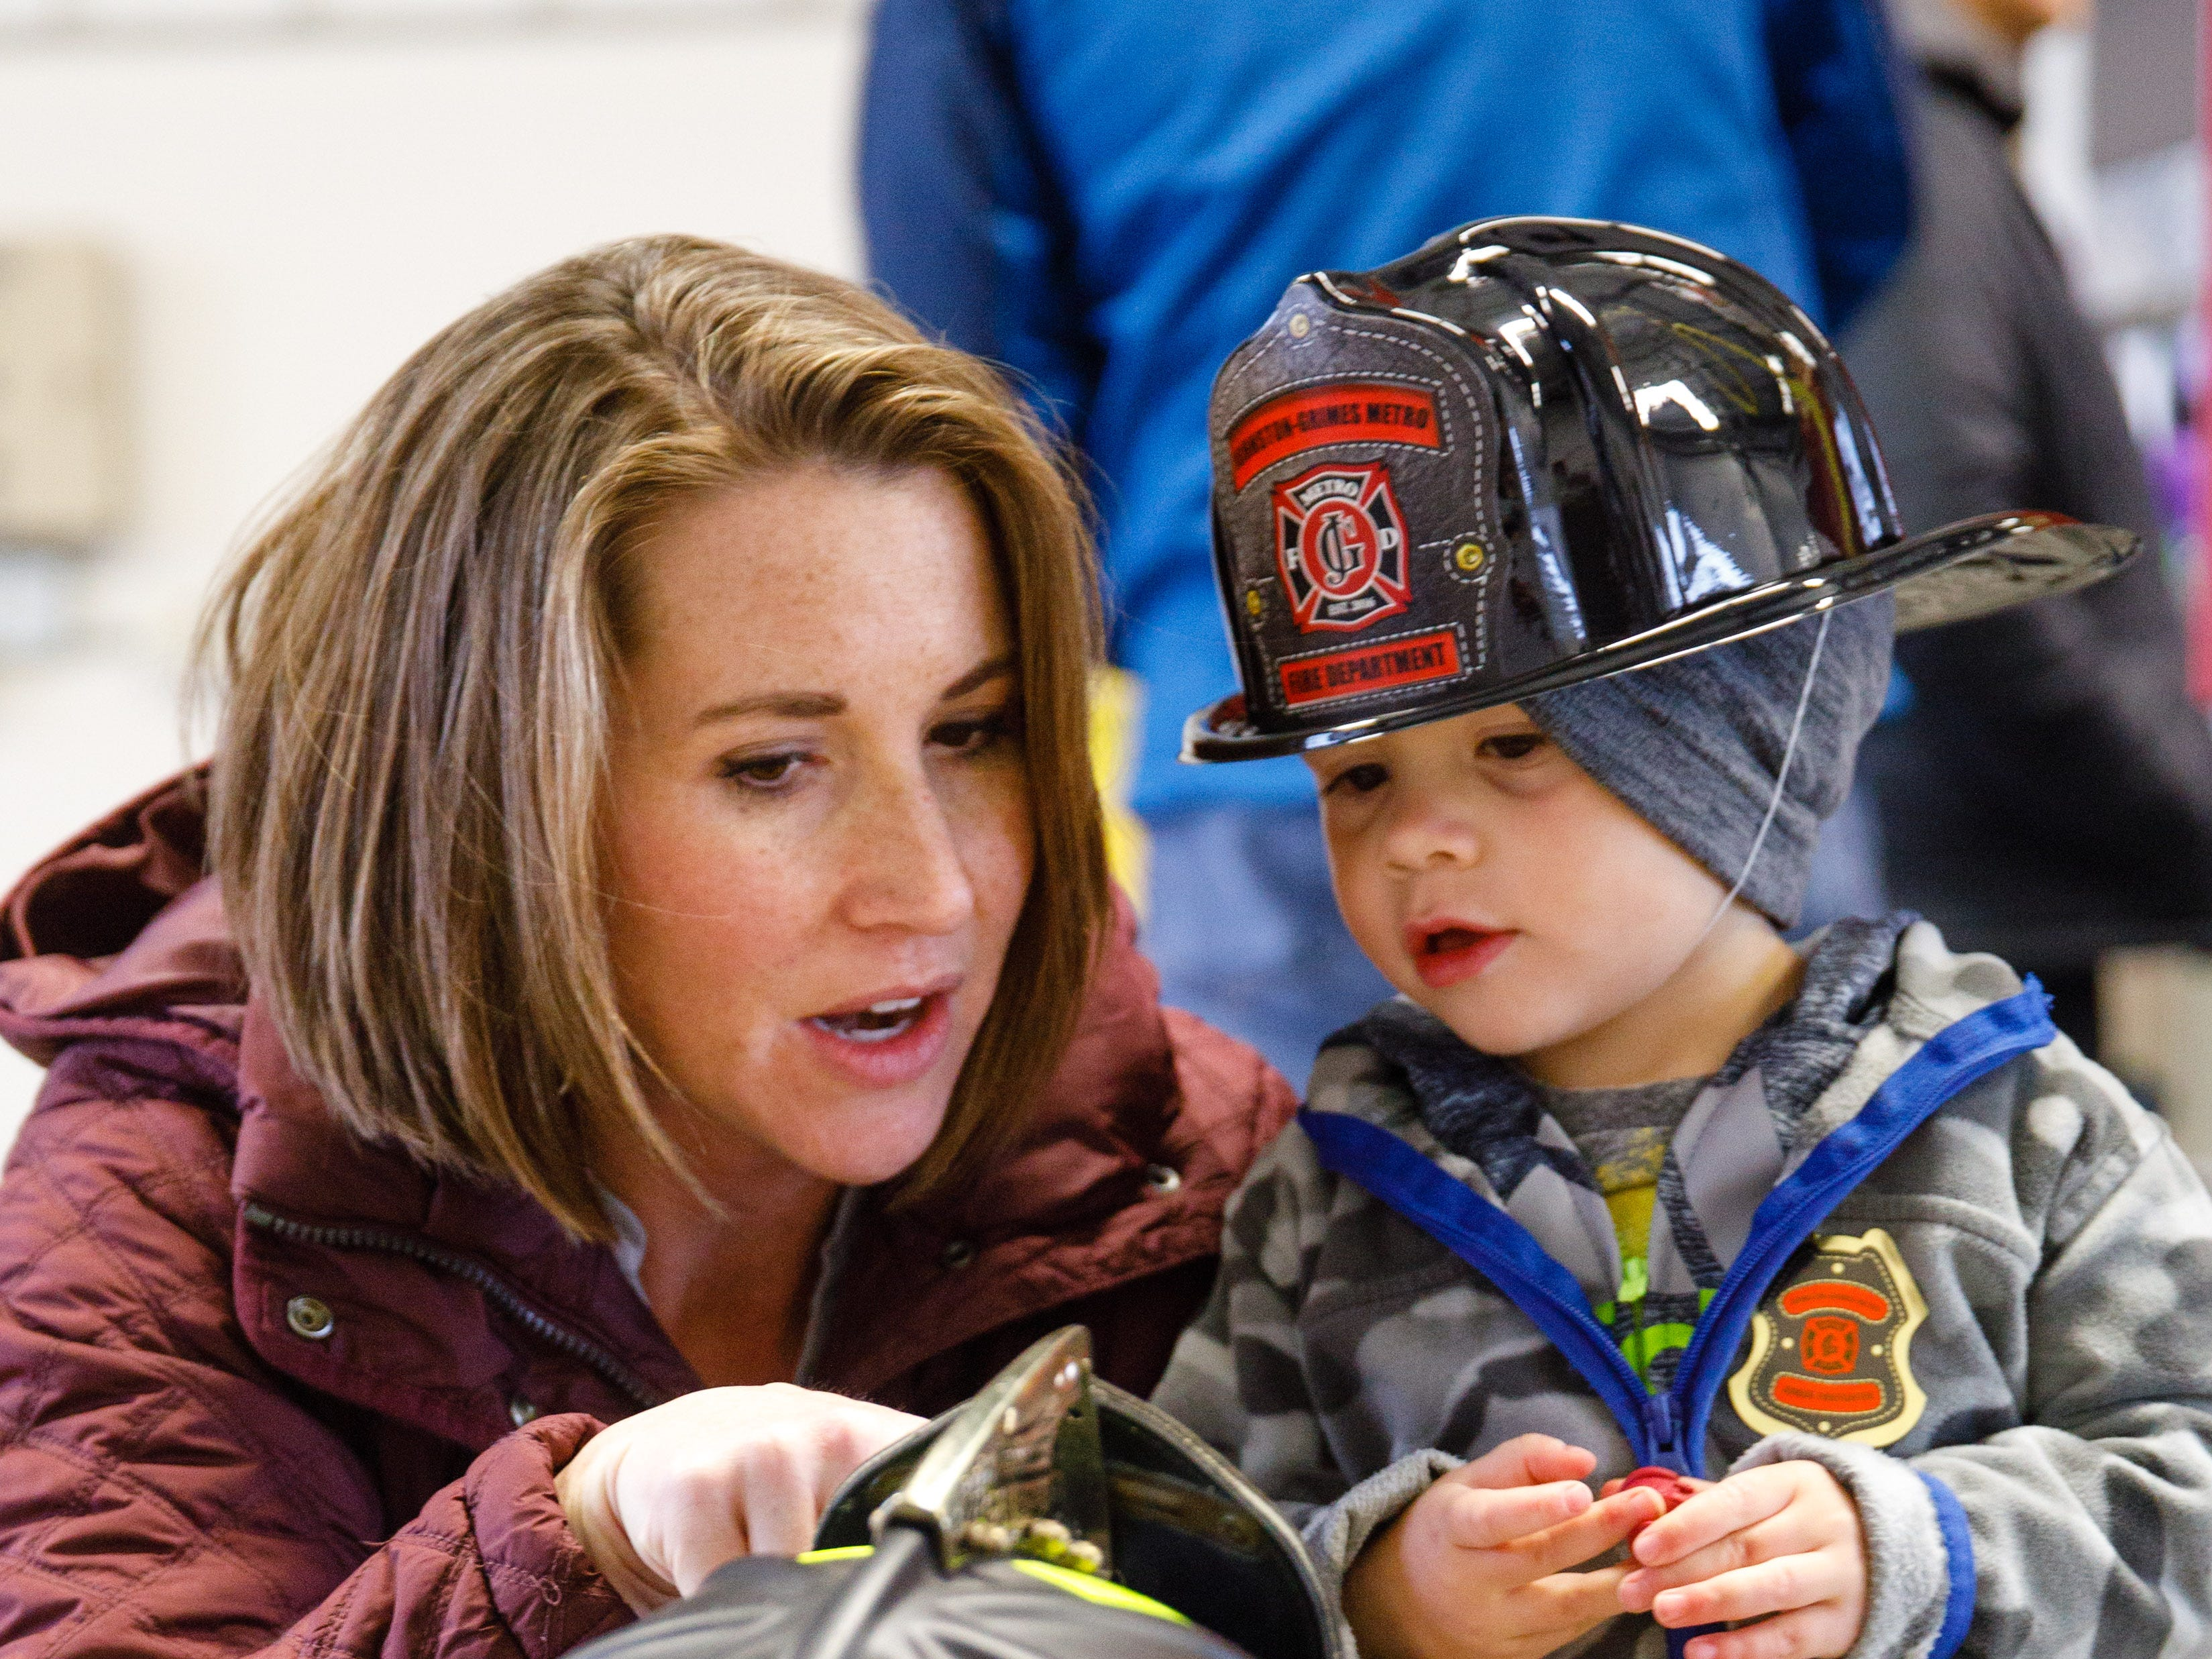 Laura Sprague and TJ Sprague, 2, check out a firefighter helmet Wednesday, Oct. 10, 2018, during the Johnston-Grimes Metropolitan Fire Department's annual Fire Prevention Week Open House at the 62nd Avenue Fire Station in Johnston.